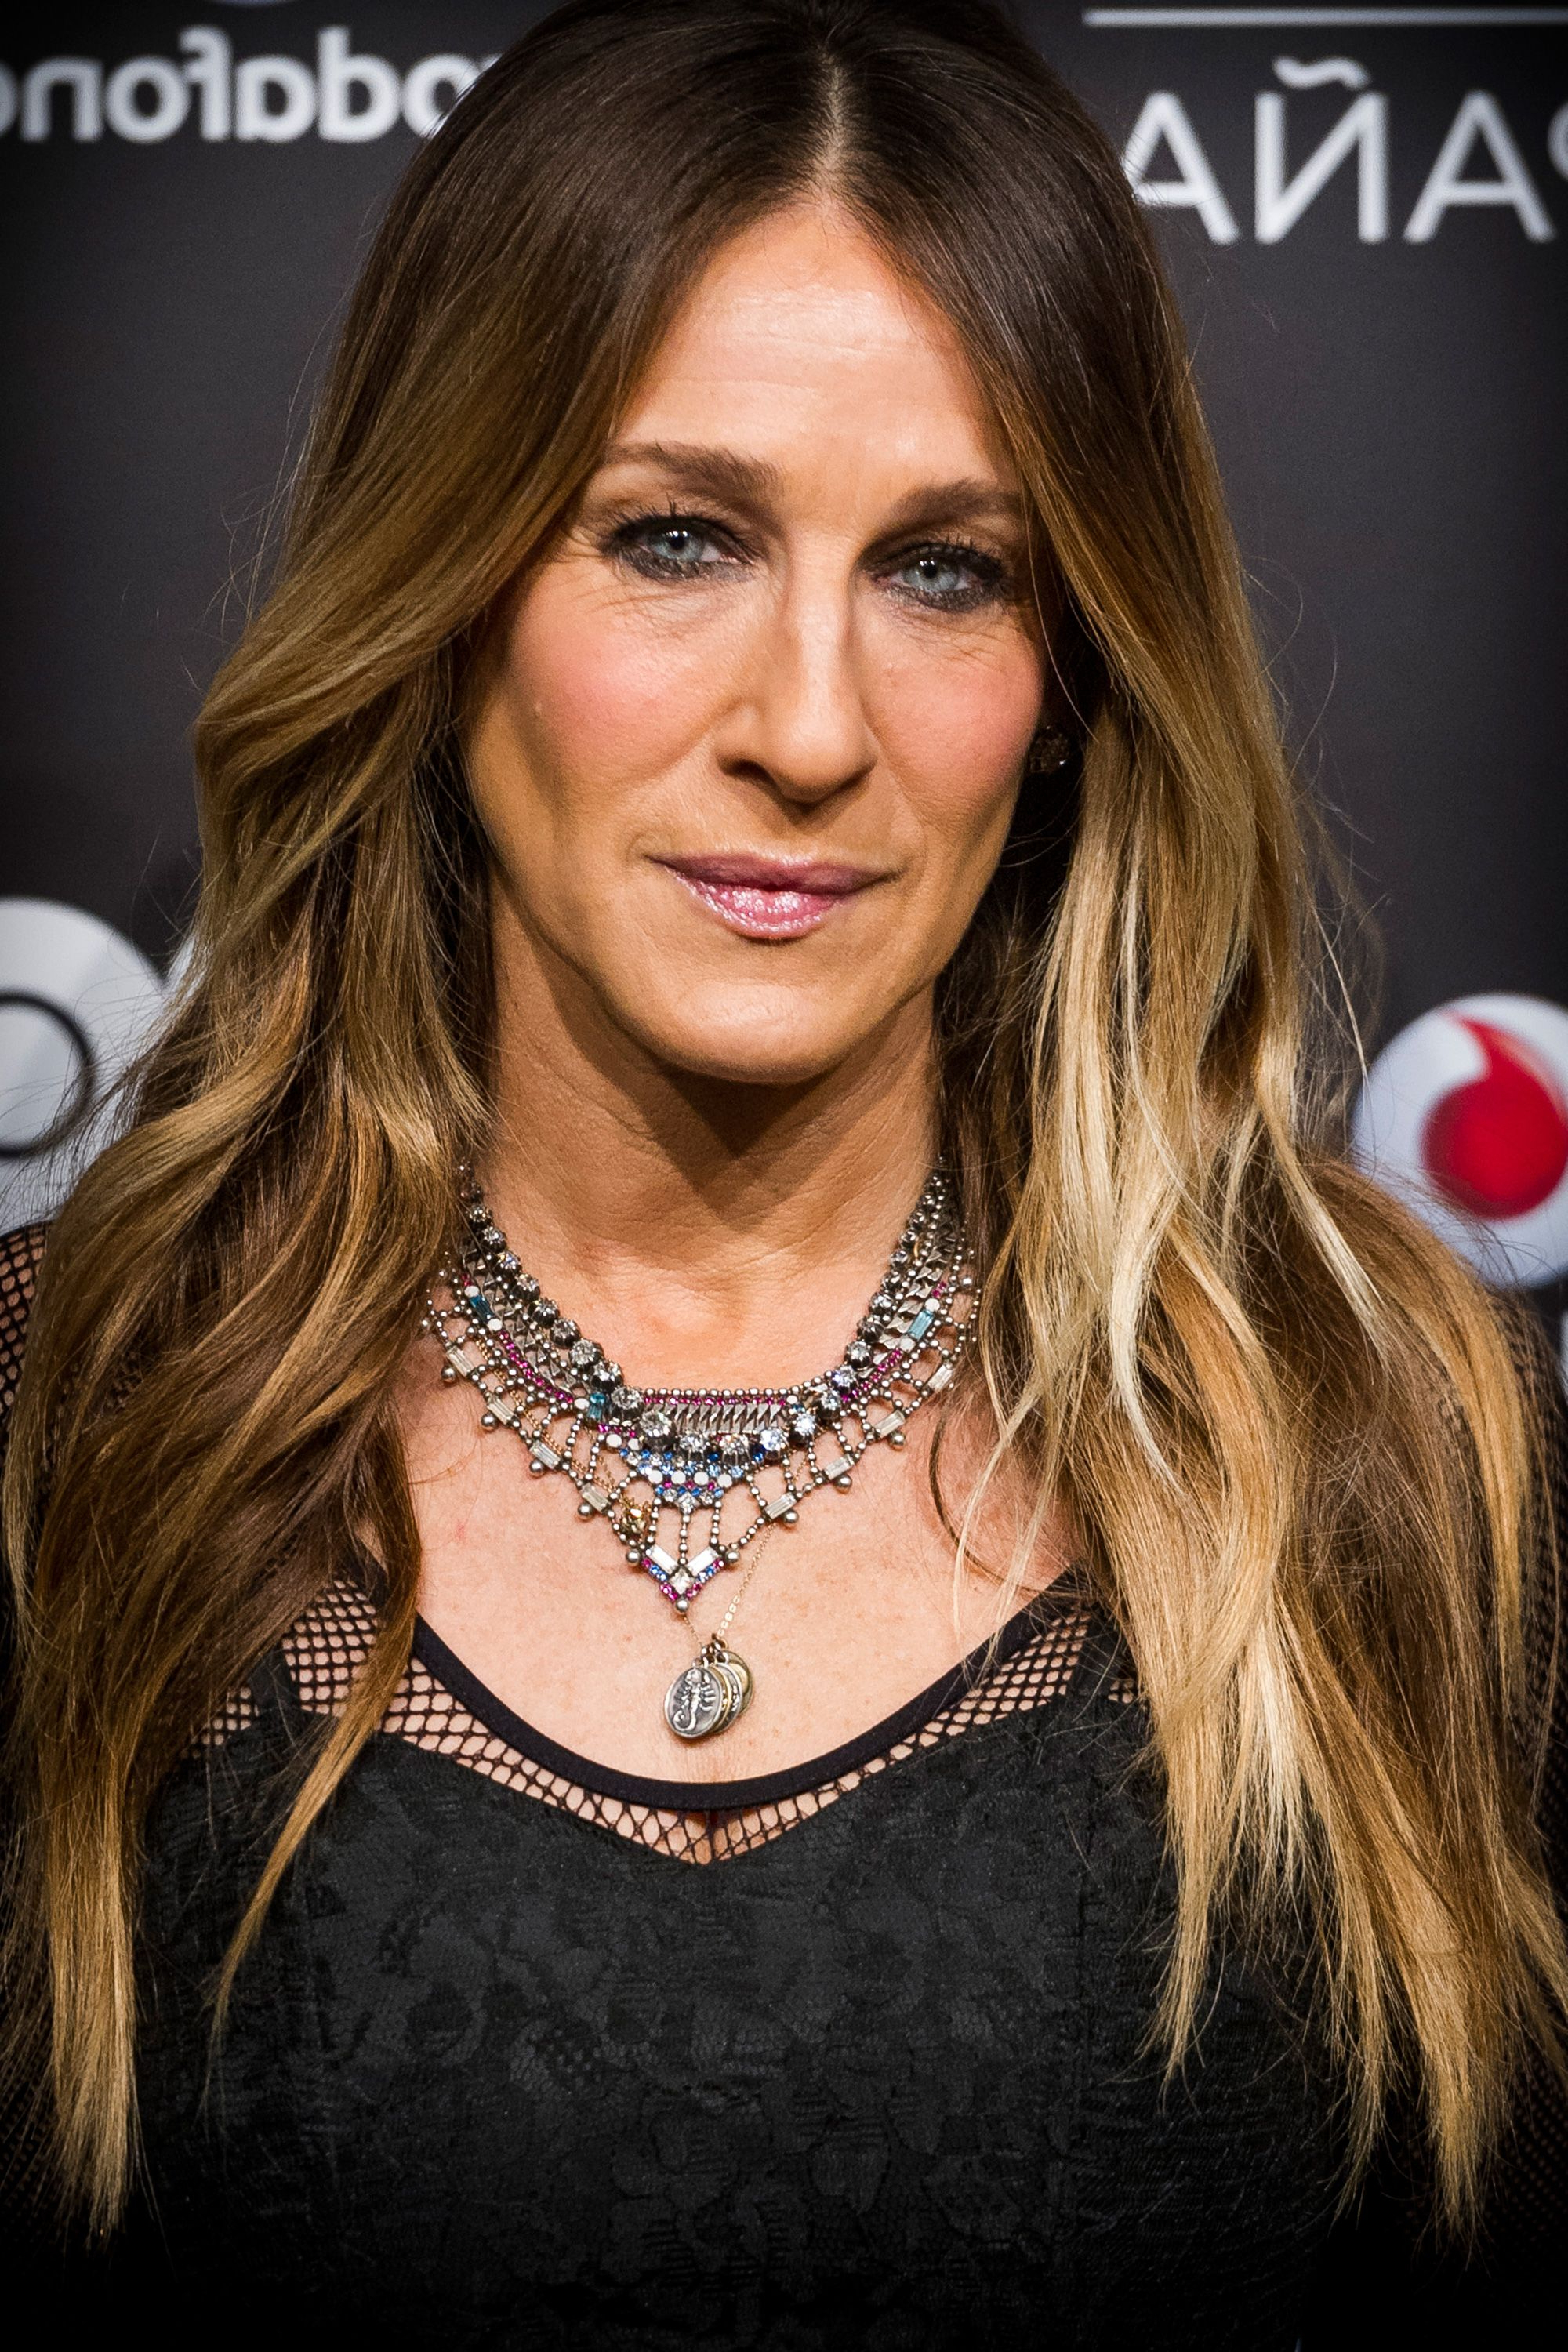 14 Stunning Ombré Hair Ideas From Celebrities – Celeb Ombré Hair With Regard To Newest Sarah Jessica Parker Medium Hairstyles (Gallery 9 of 20)